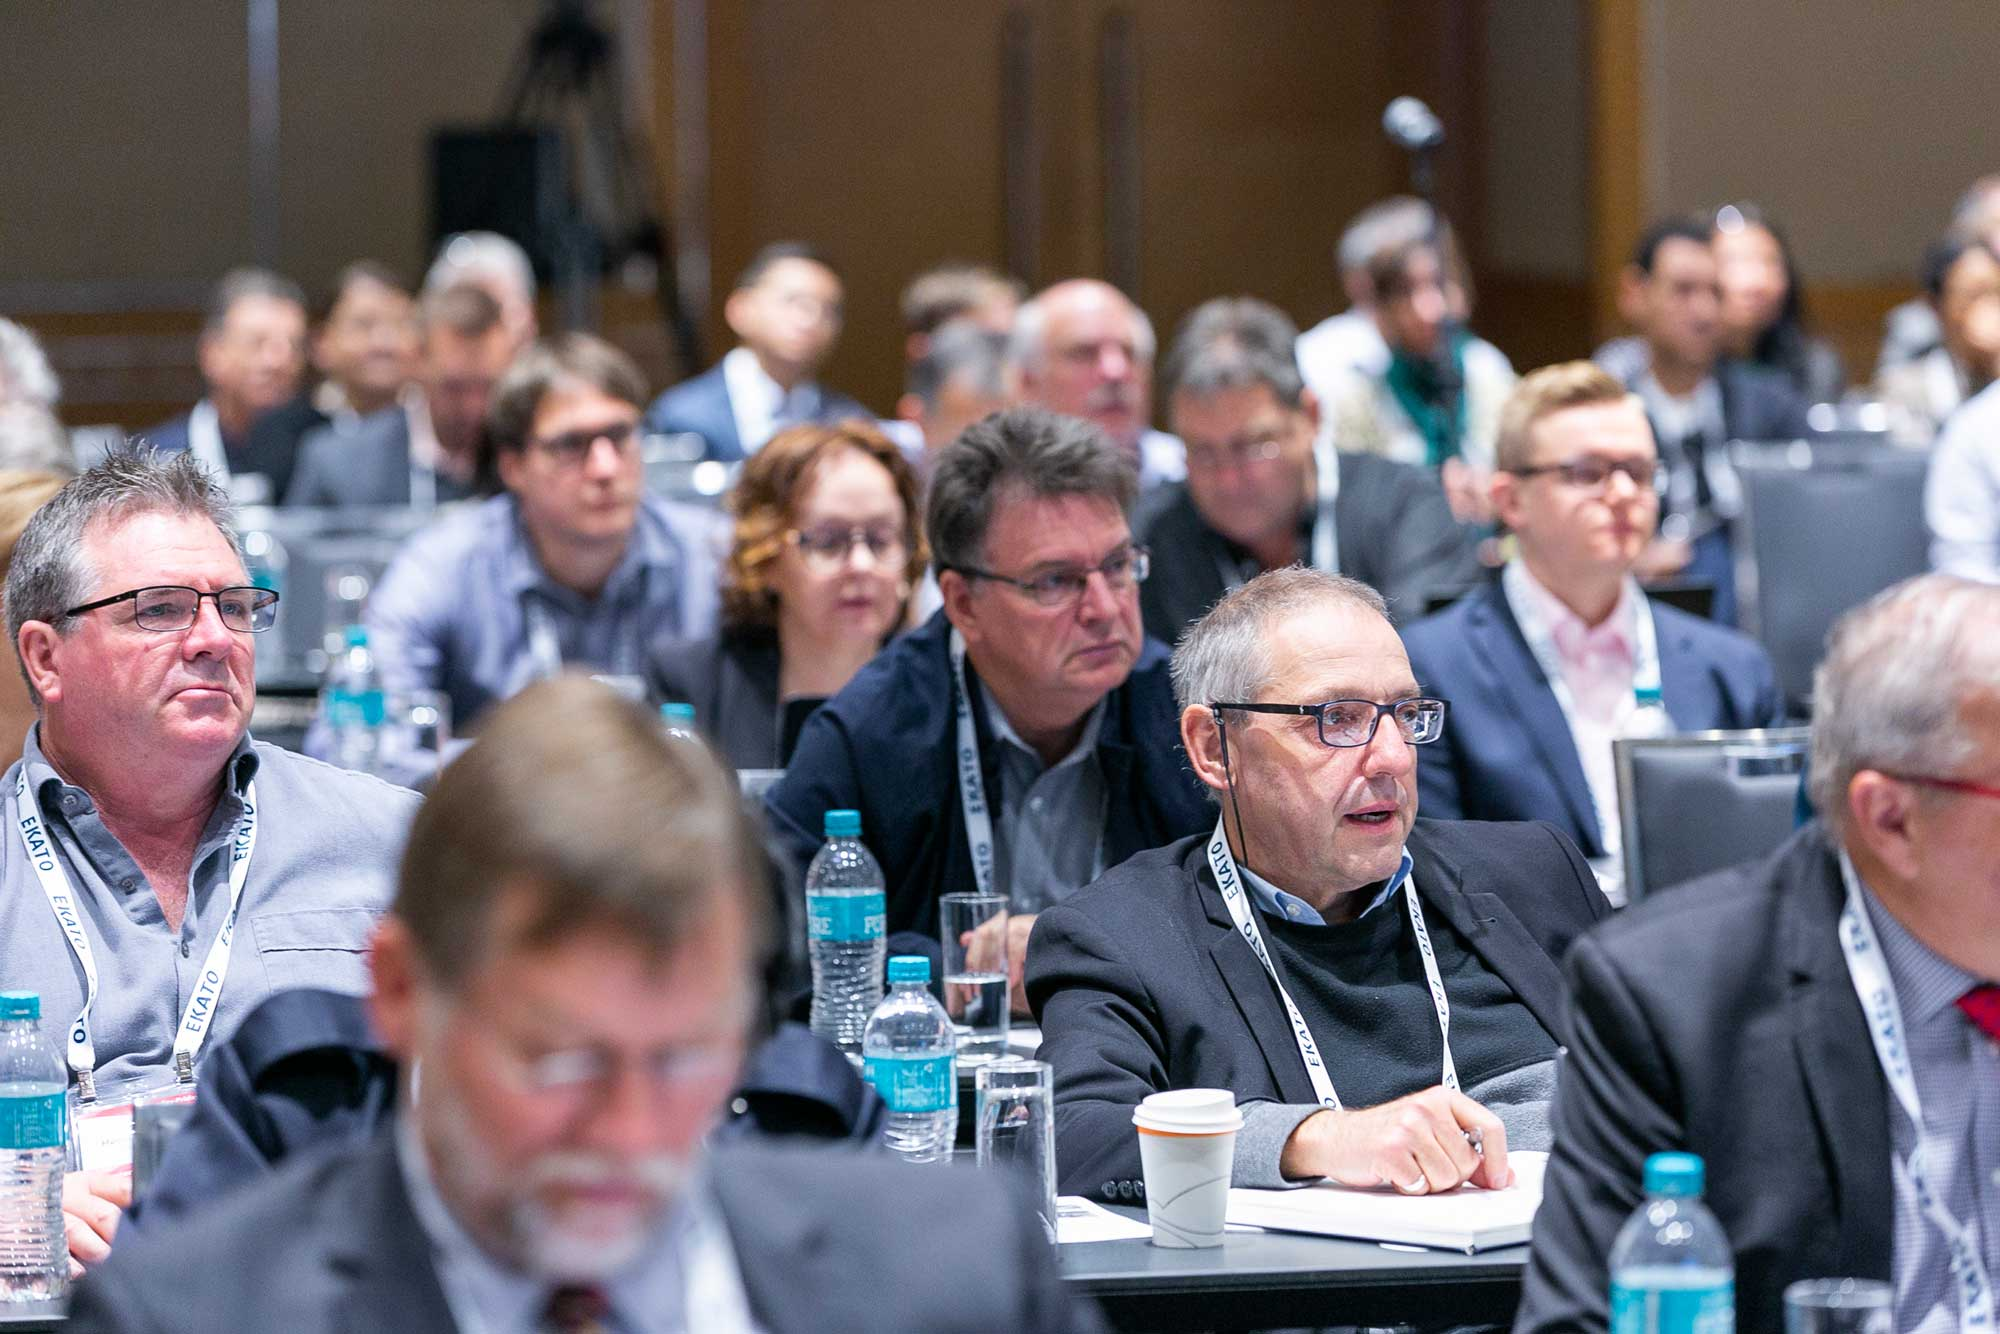 Image of alta conference, everyone looking attentive